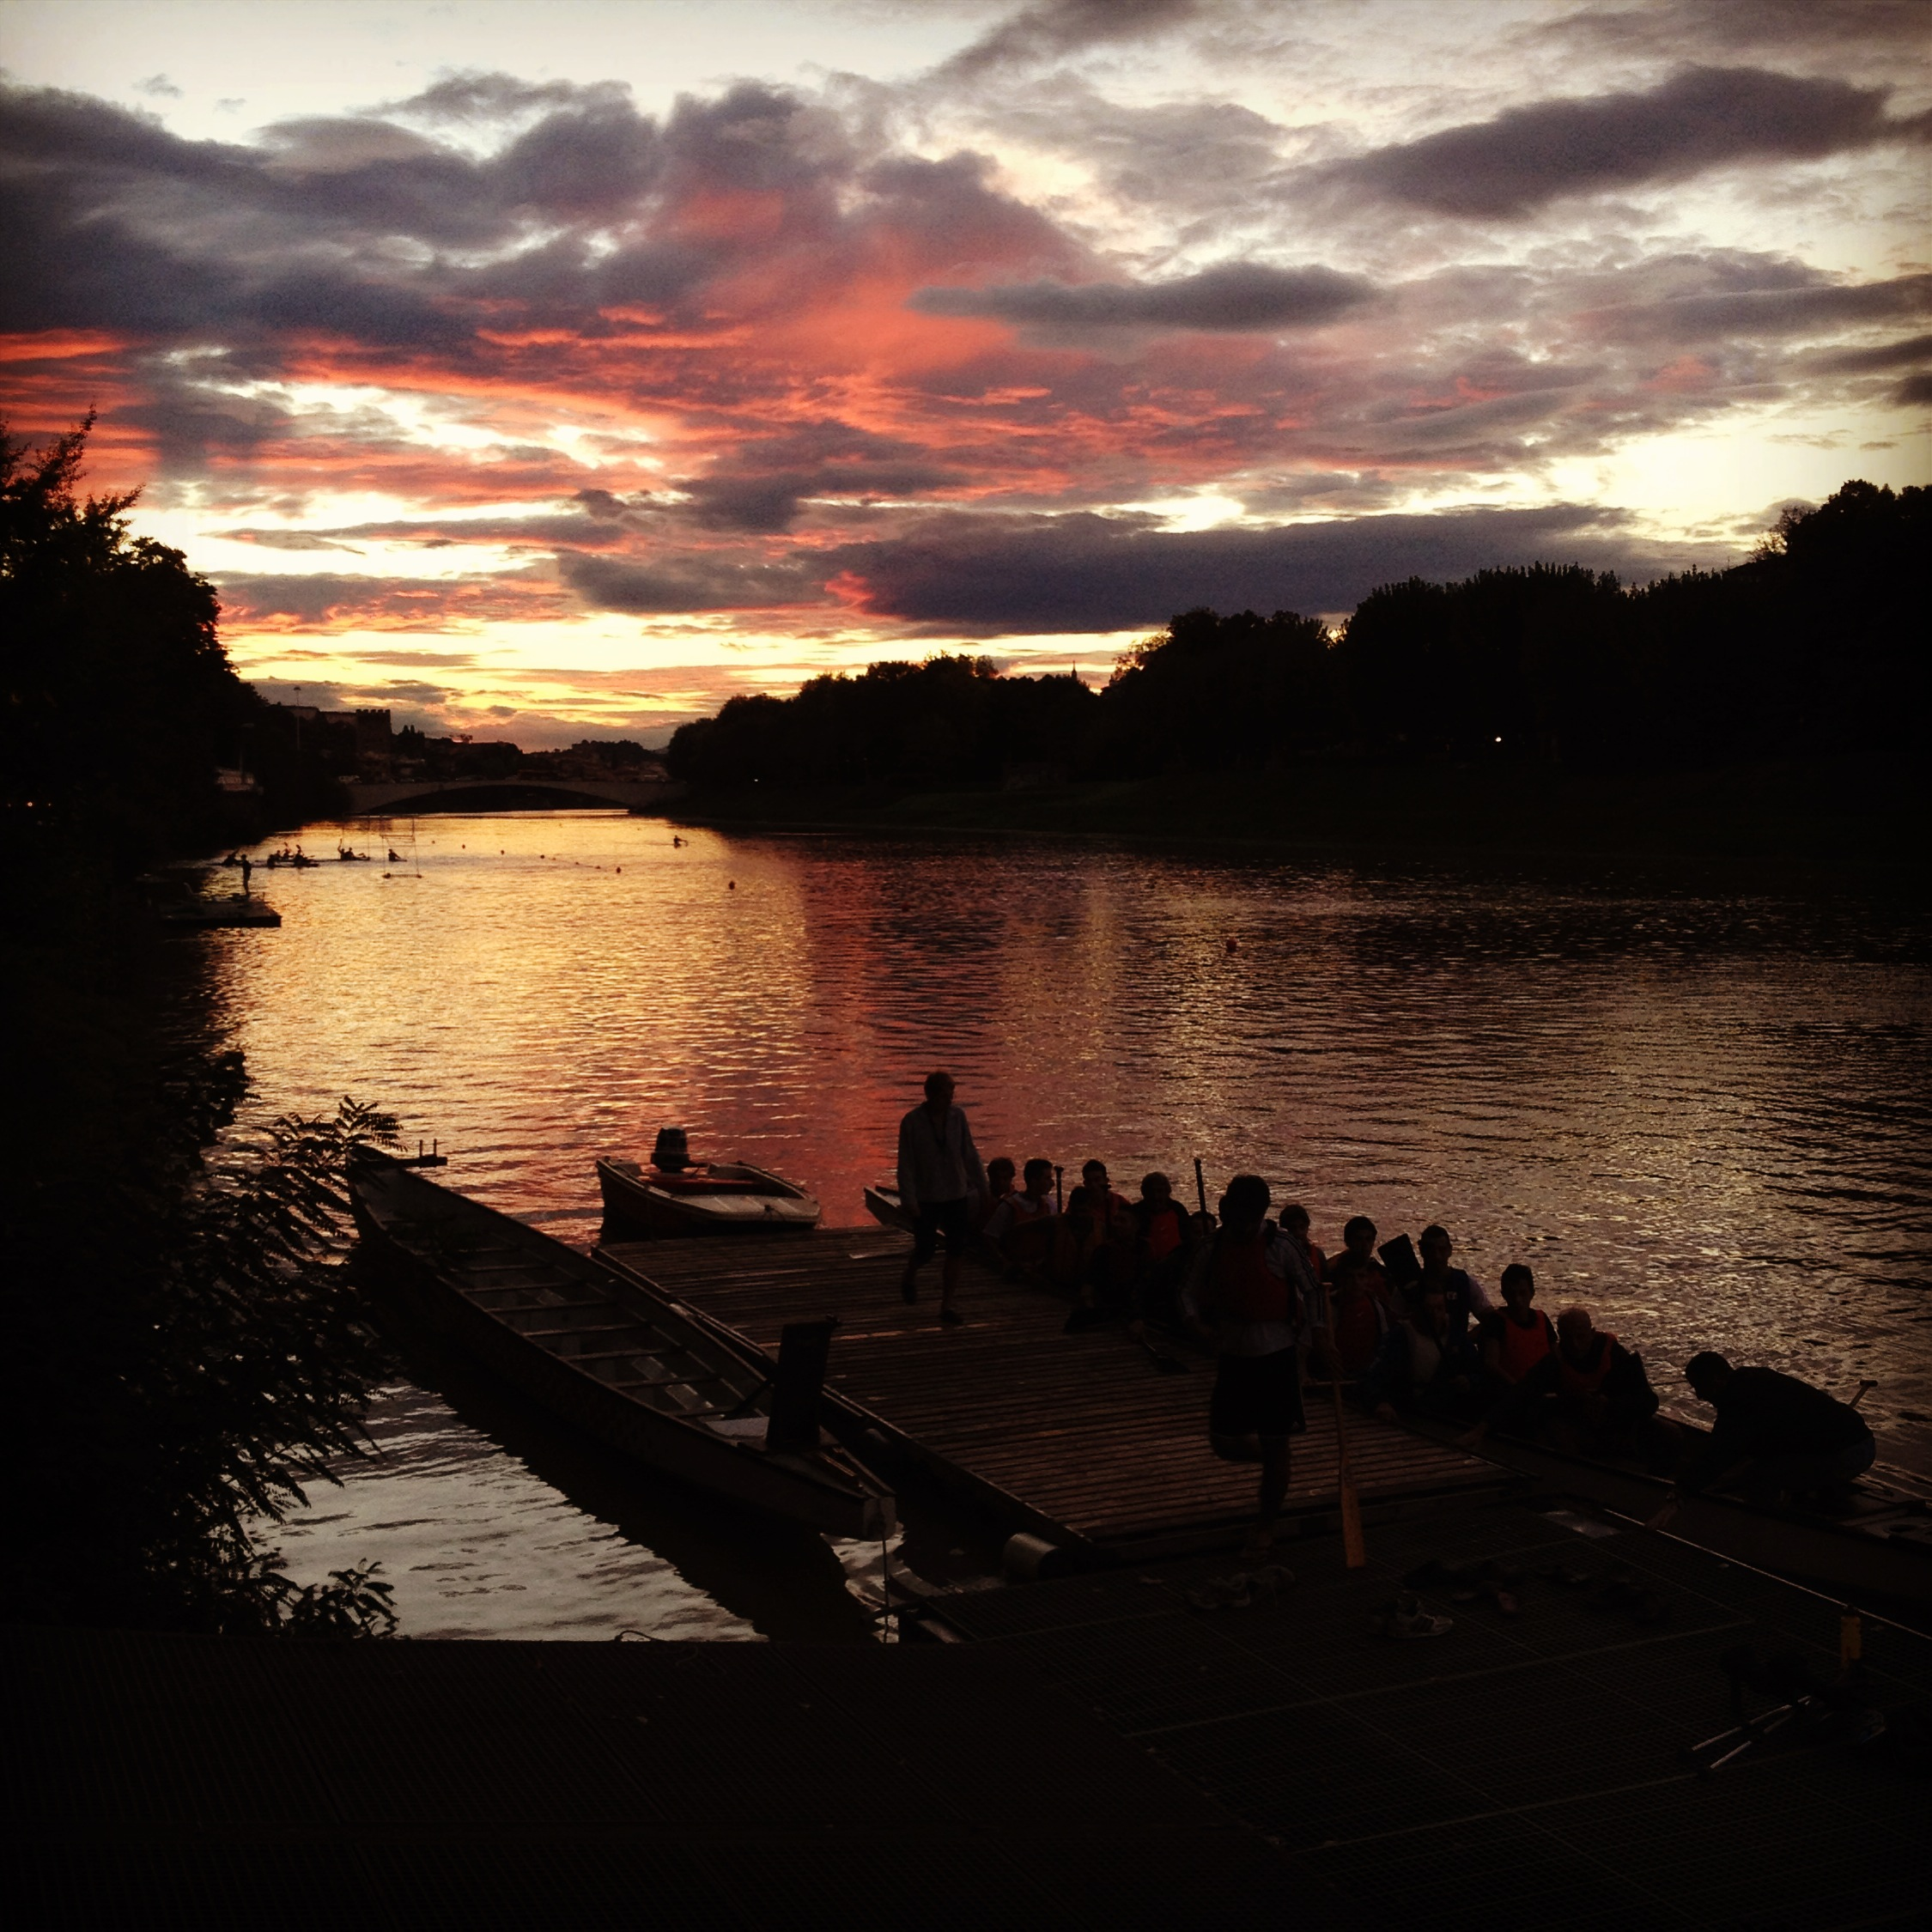 Dragonboat racing on the Arno at sunset.